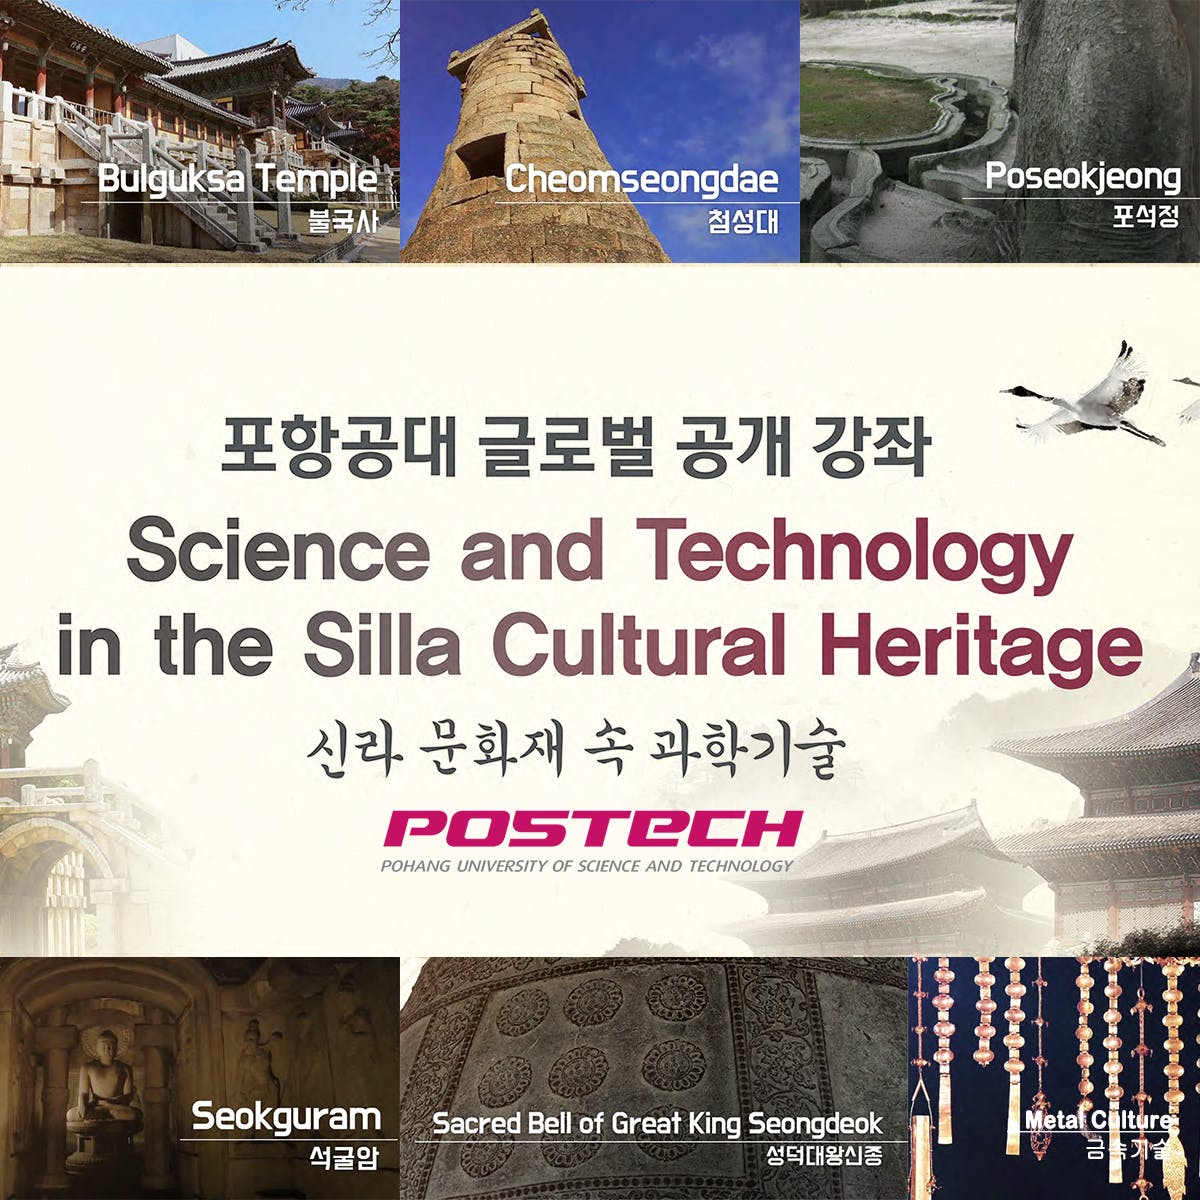 Science and Technology in the Silla Cultural Heritage